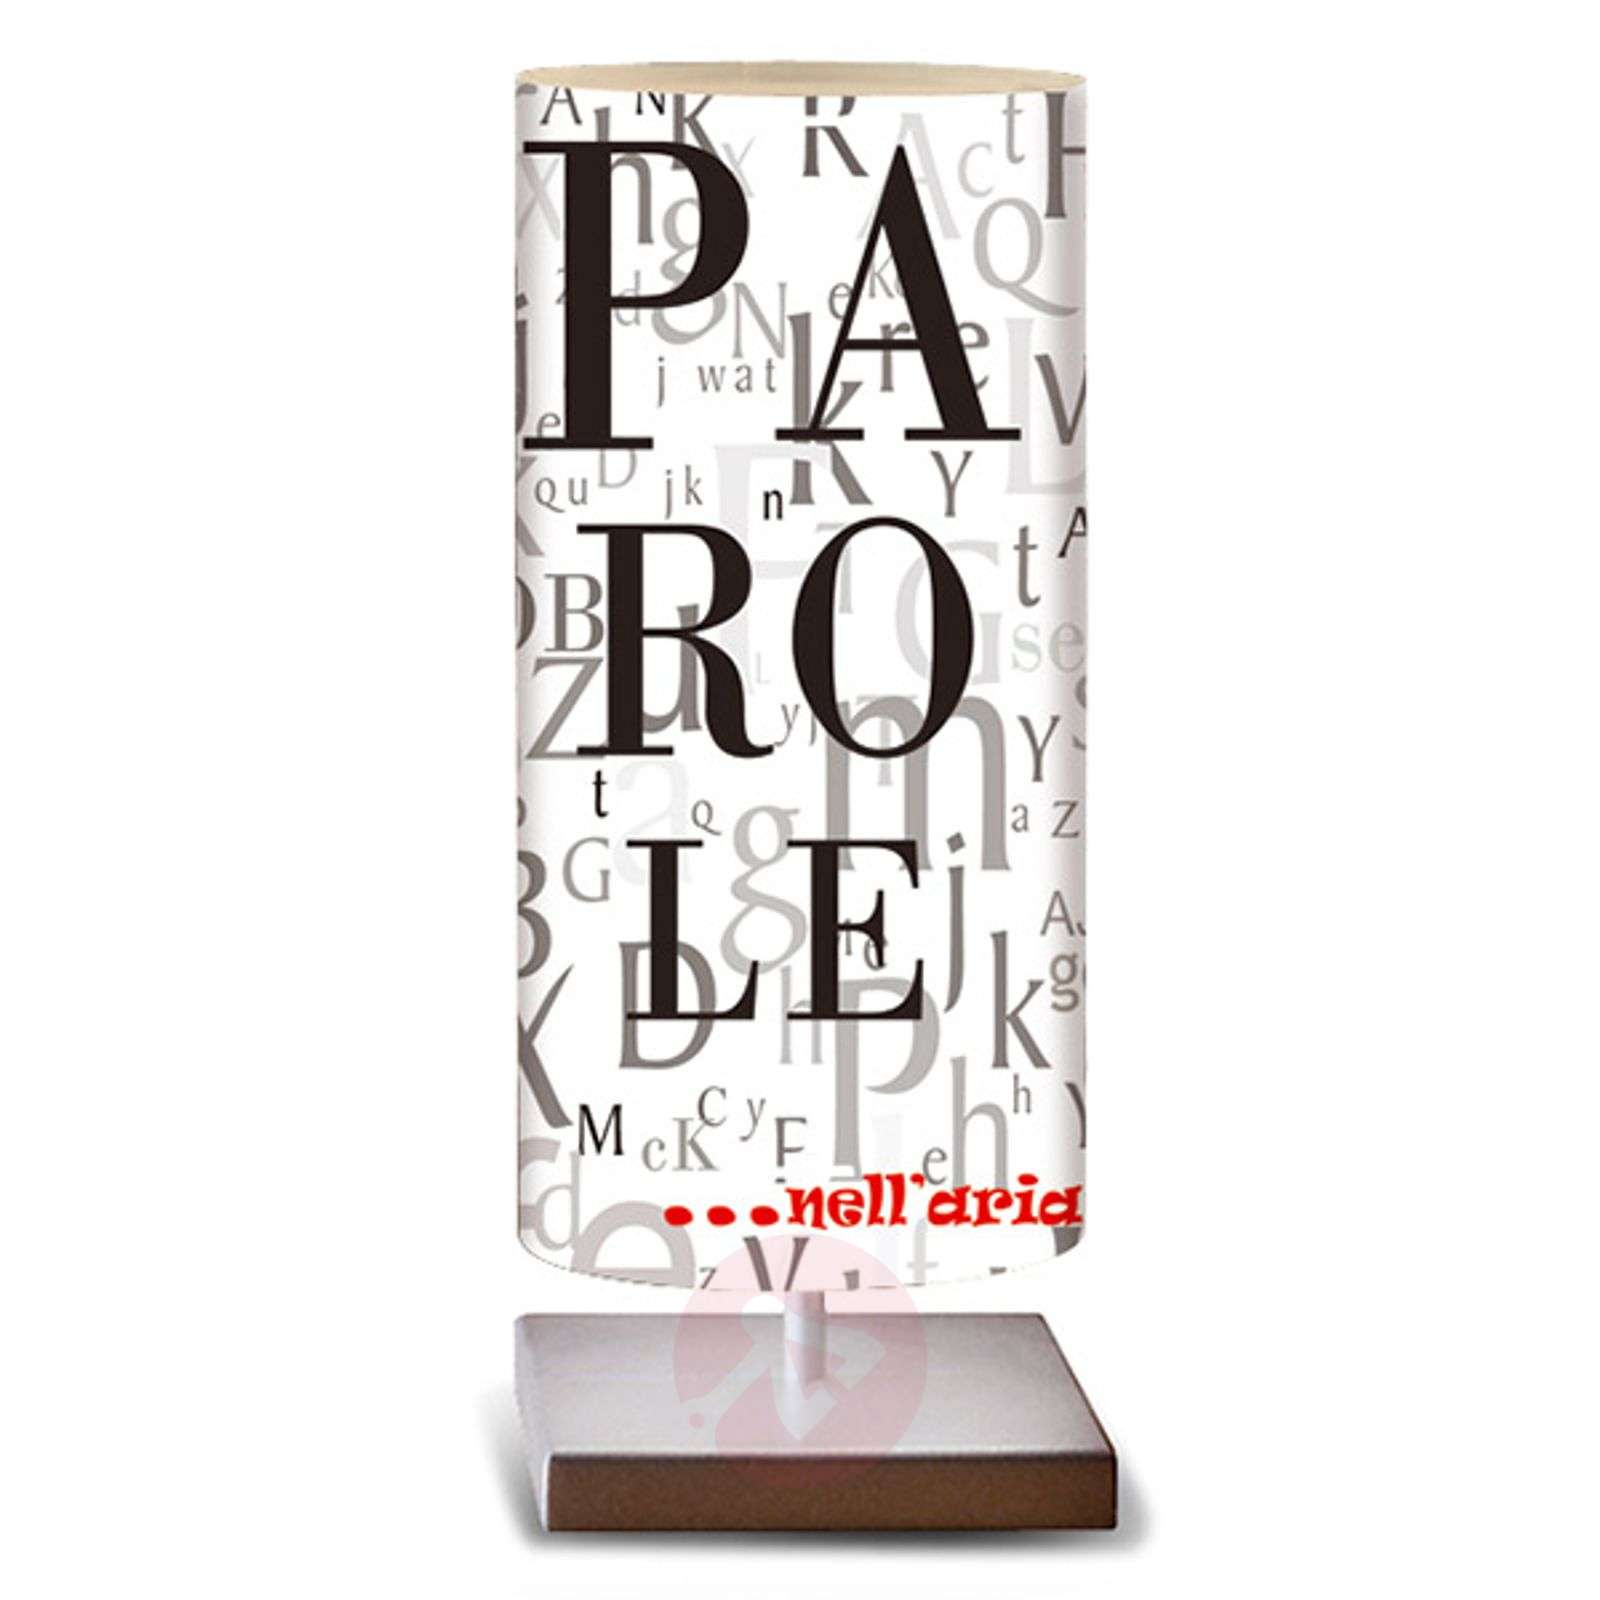 Black and white table lamp Words-1056089-01